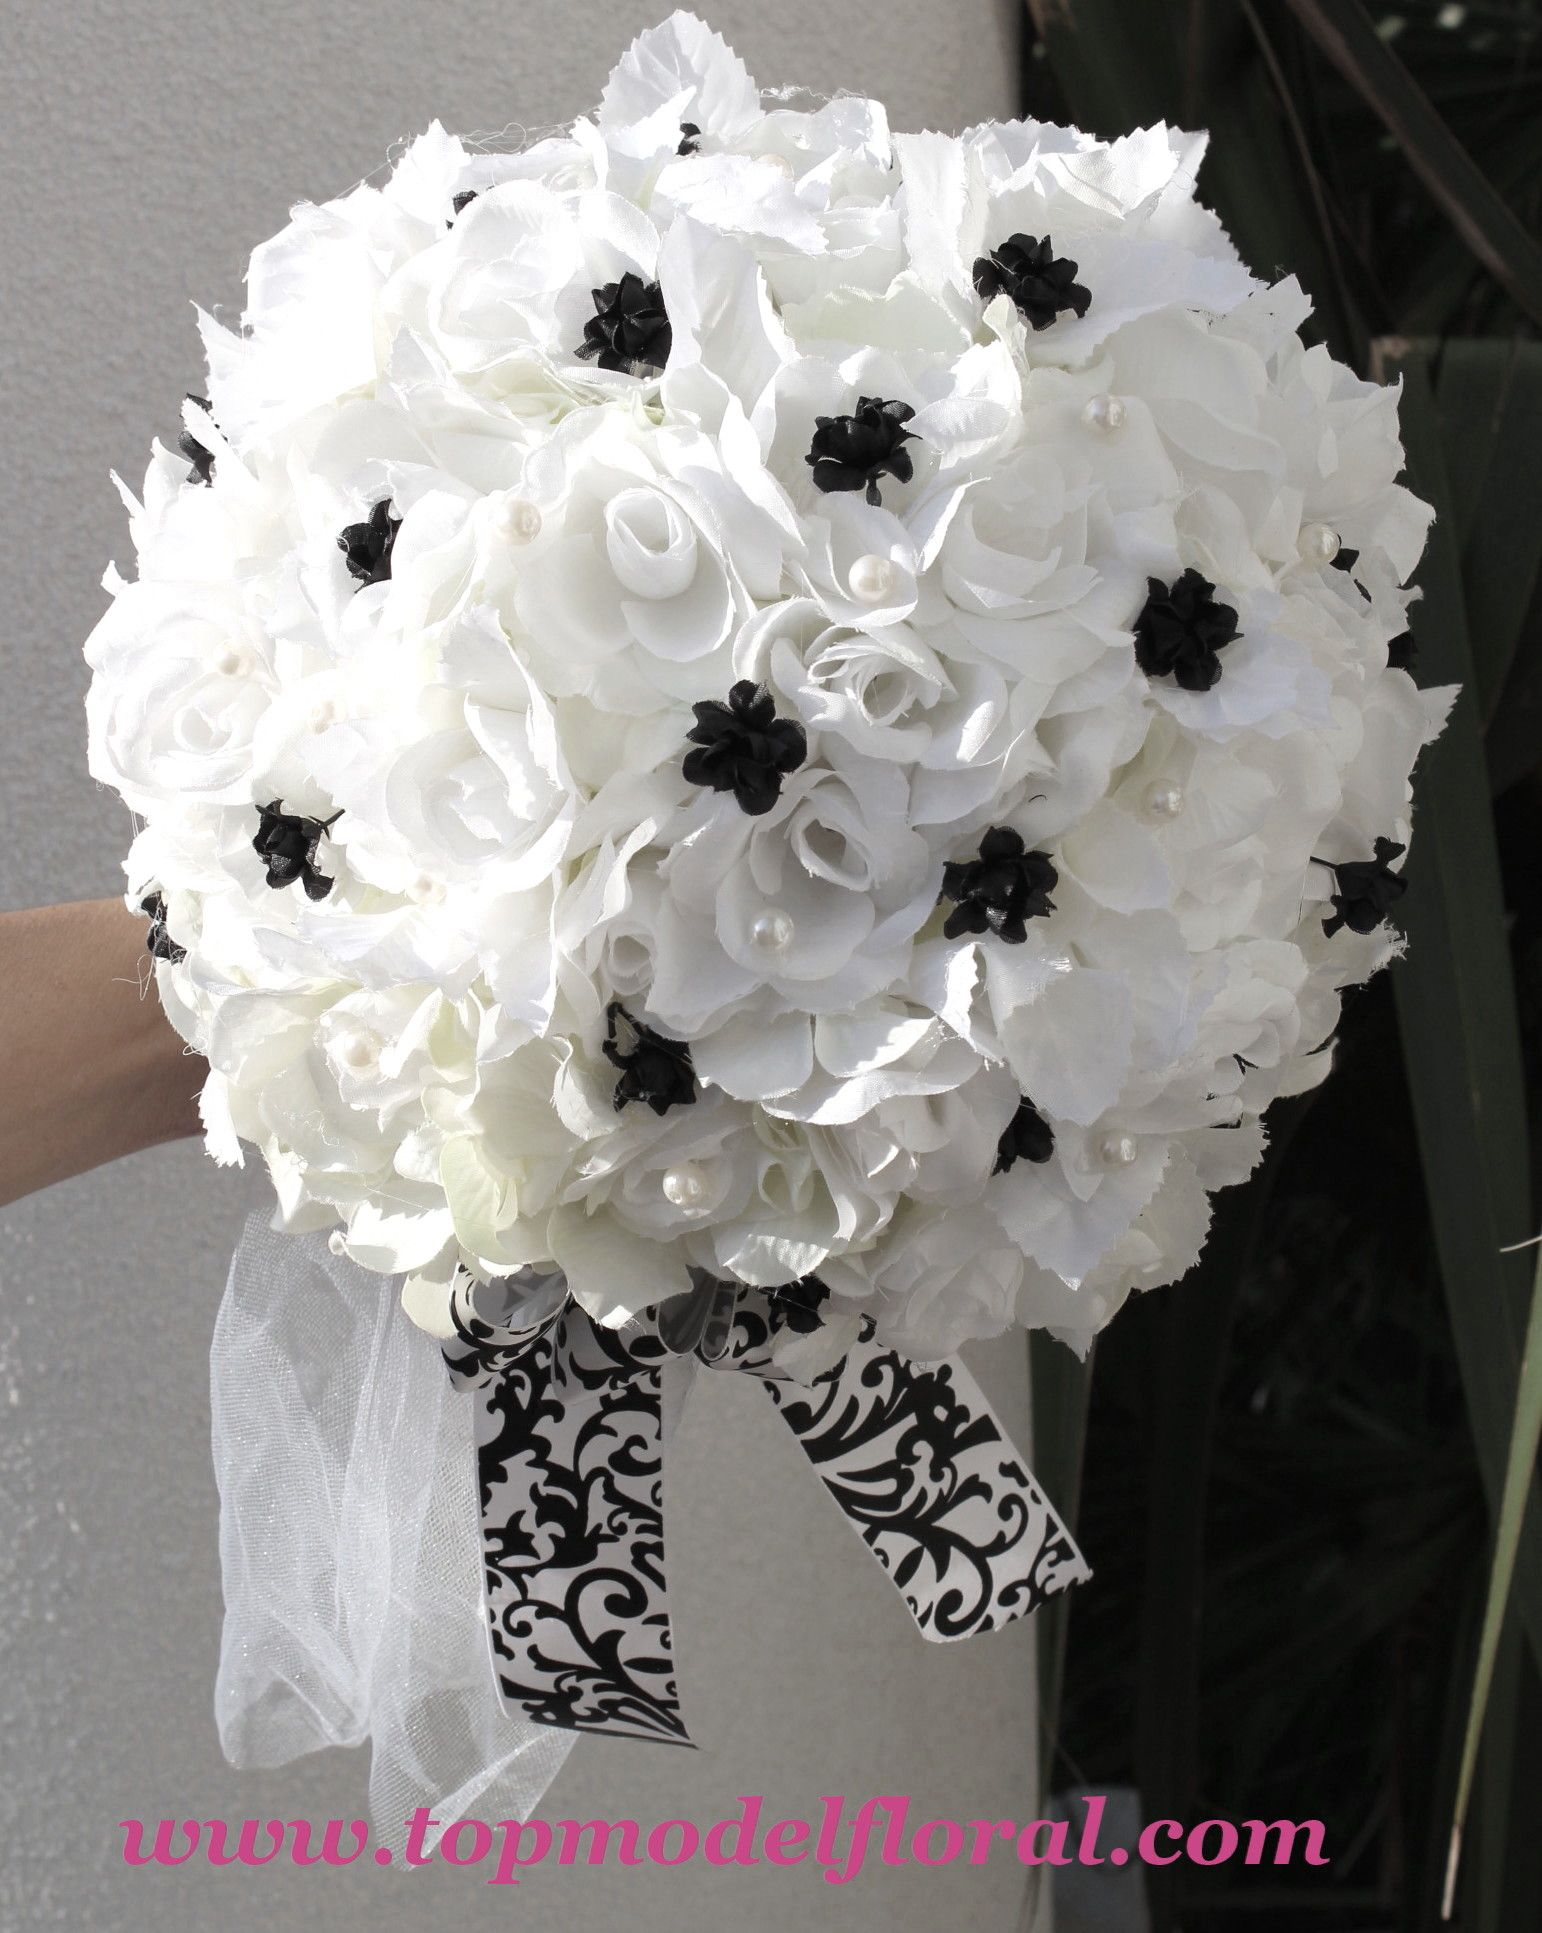 Best black and white wedding flowers photos styles ideas 2018 black and white wedding flowers for a chic wedding decorations in mightylinksfo Images